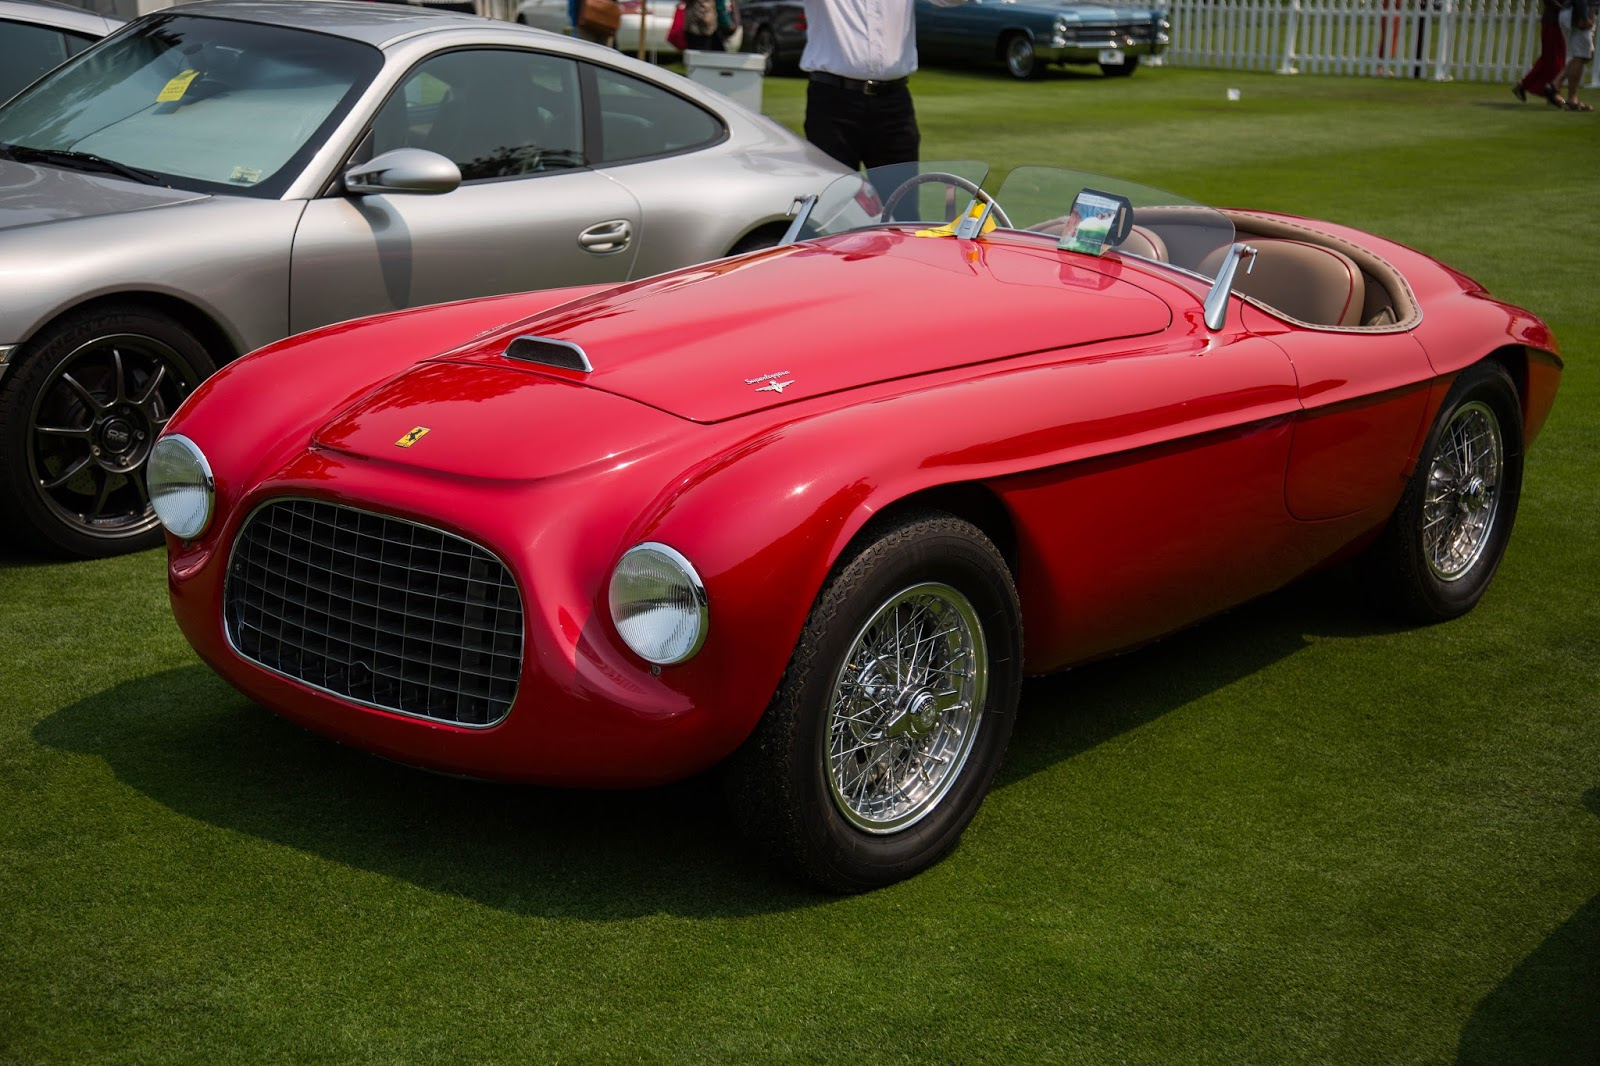 Photo Gallery: The super hot Cars In The Pebble Beach Parking Lot ...